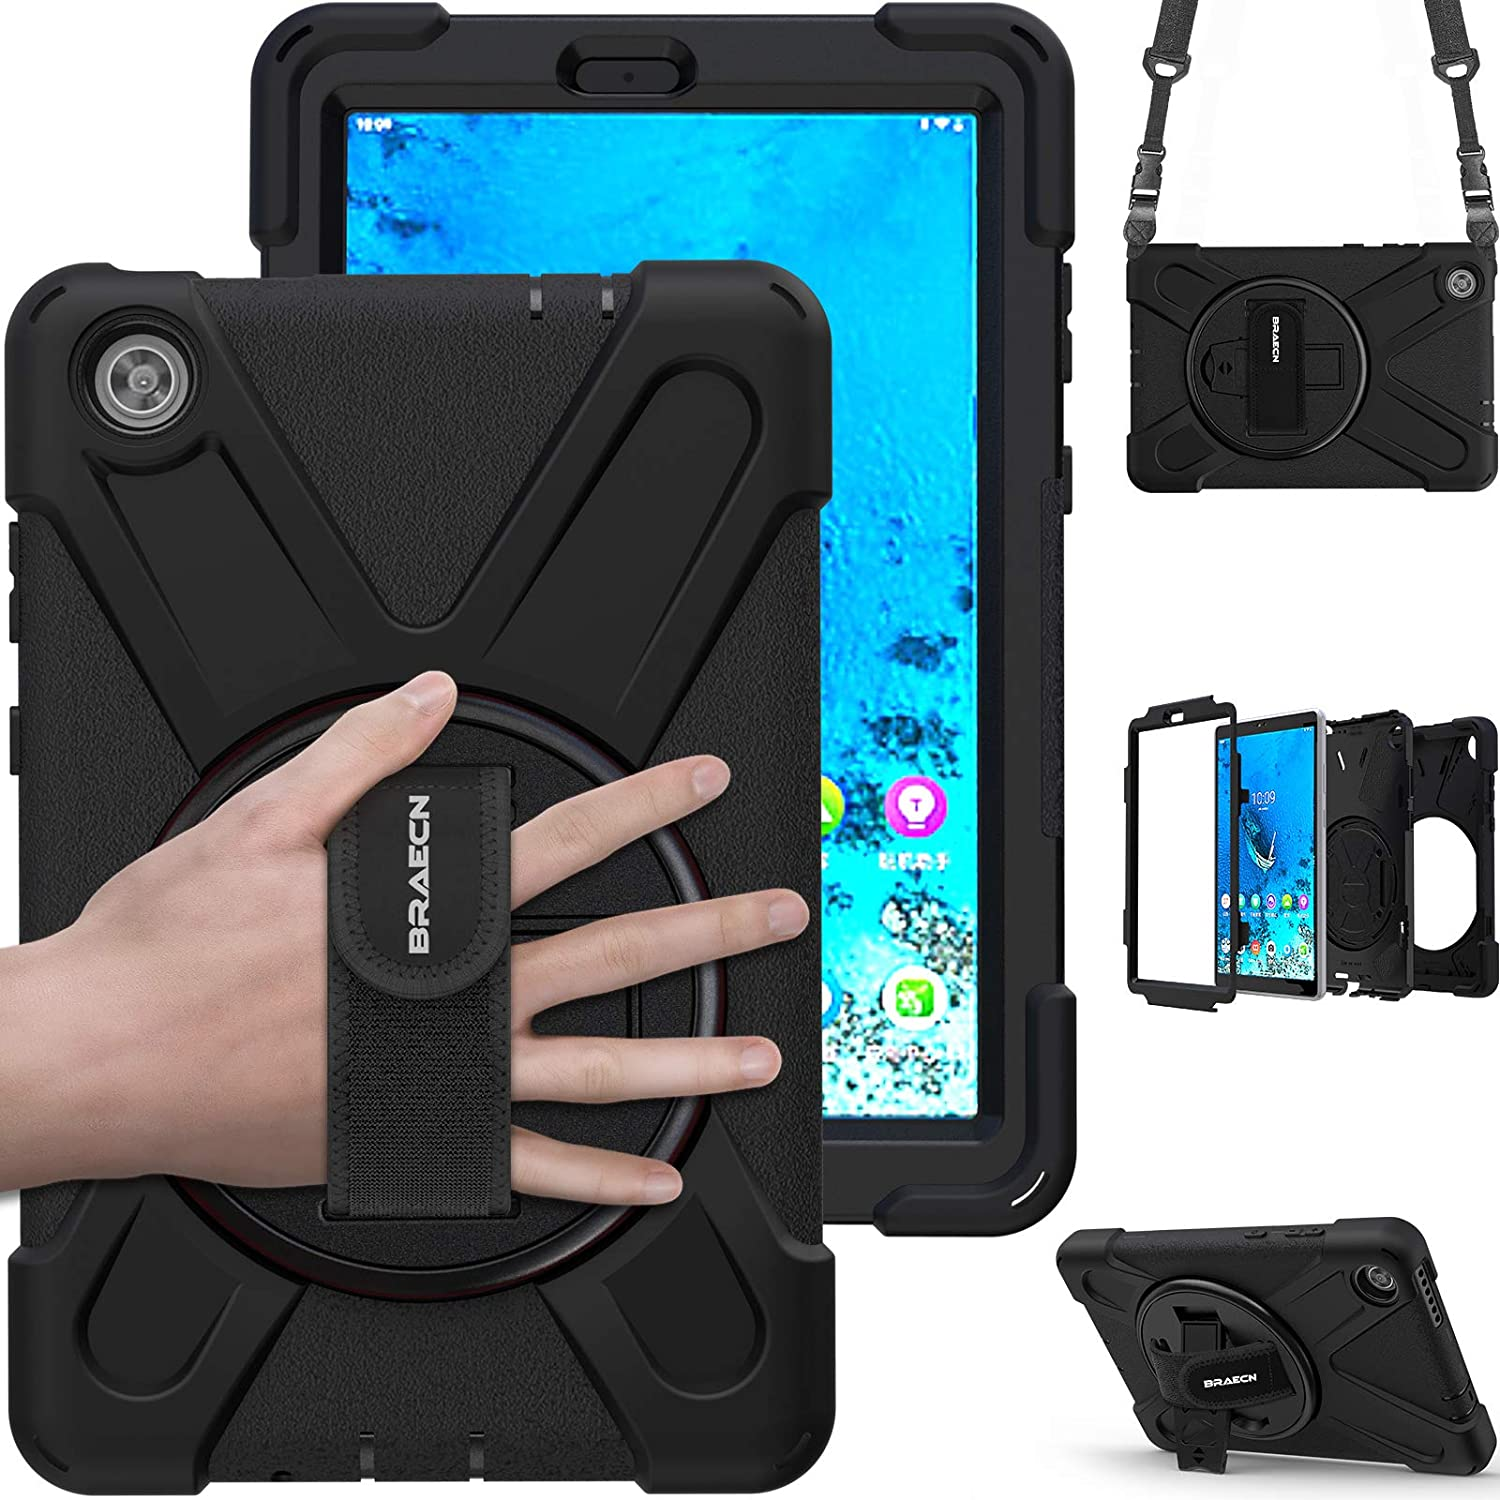 BRAECN Lenovo Smart Tab M8 Case, Heavy Duty Rugged Shockproof Hard Case with Carrying Shoulder Strap, Handle Hand Strap, Built-in Kickstand for Lenovo Tab M8 8.0 Inch HD Tablet TB-8505F/8505X-Black